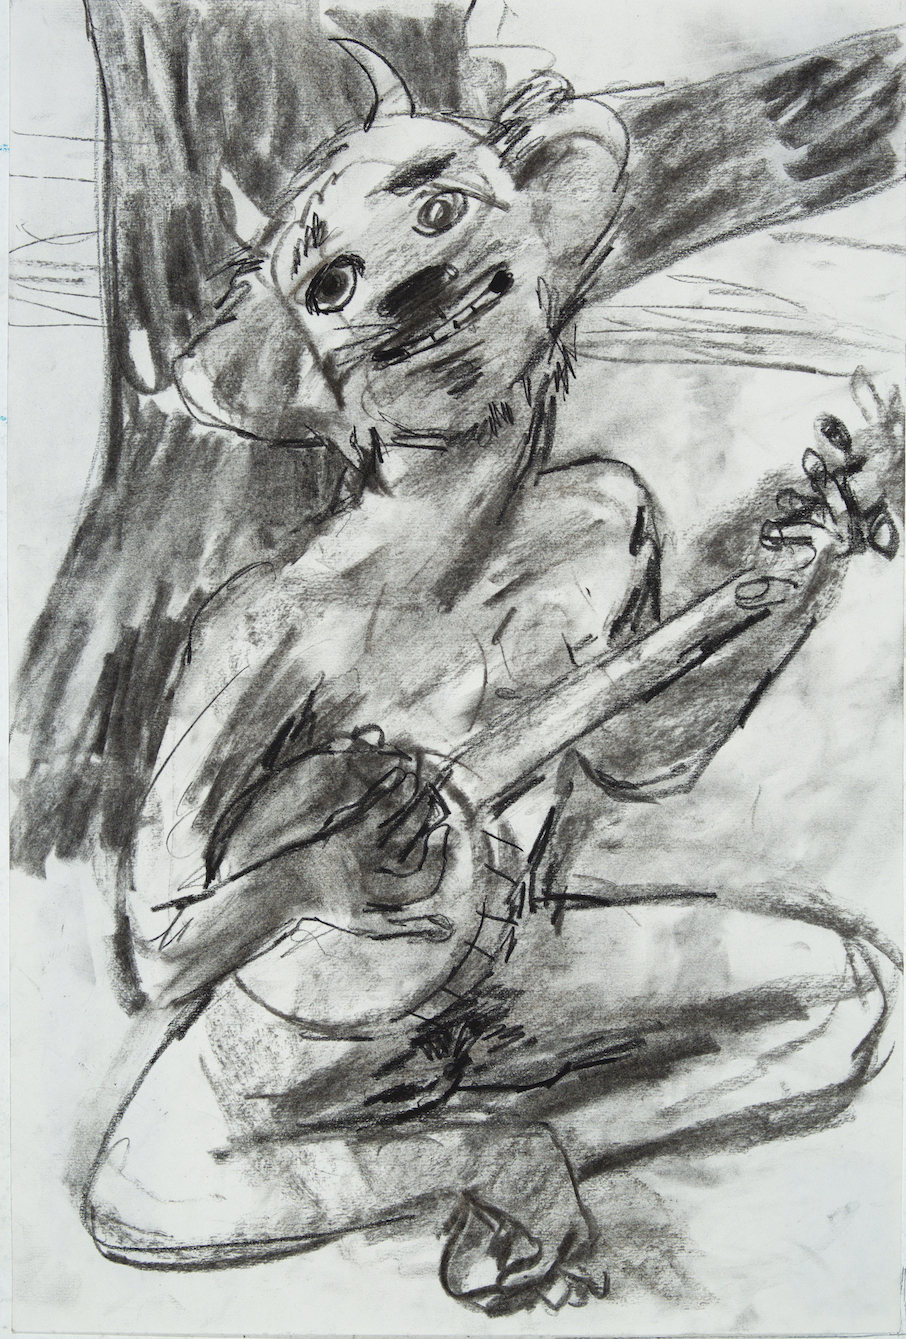 Bango charcoal 24 by 18 inches 2015.jpg